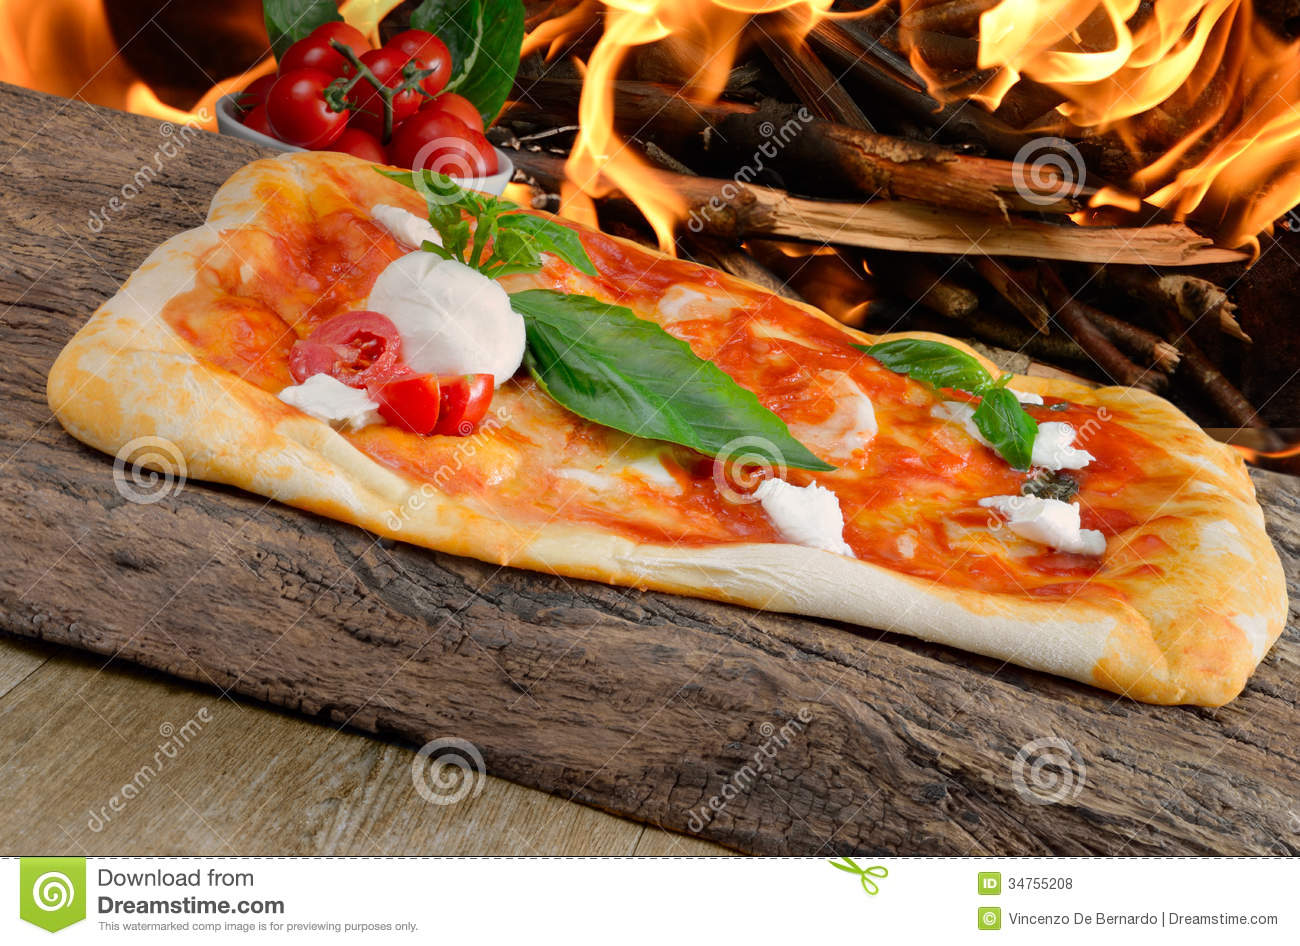 Wood fired pizza business plan